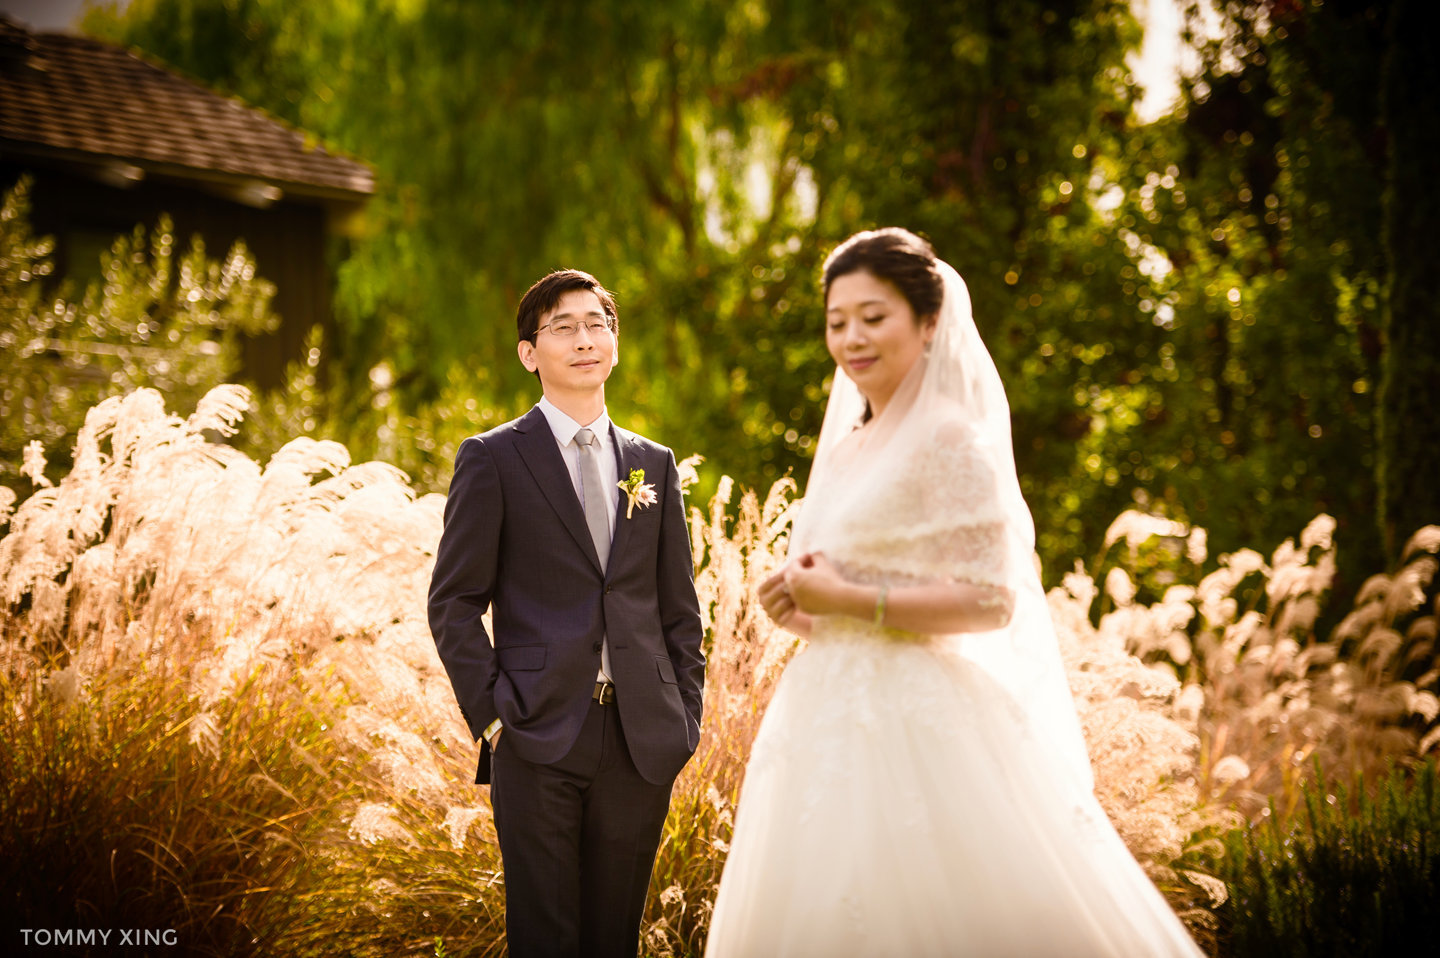 San Francisco Wedding Photography Valley Presbyterian Church WEDDING Tommy Xing Photography 洛杉矶旧金山婚礼婚纱照摄影师049.jpg